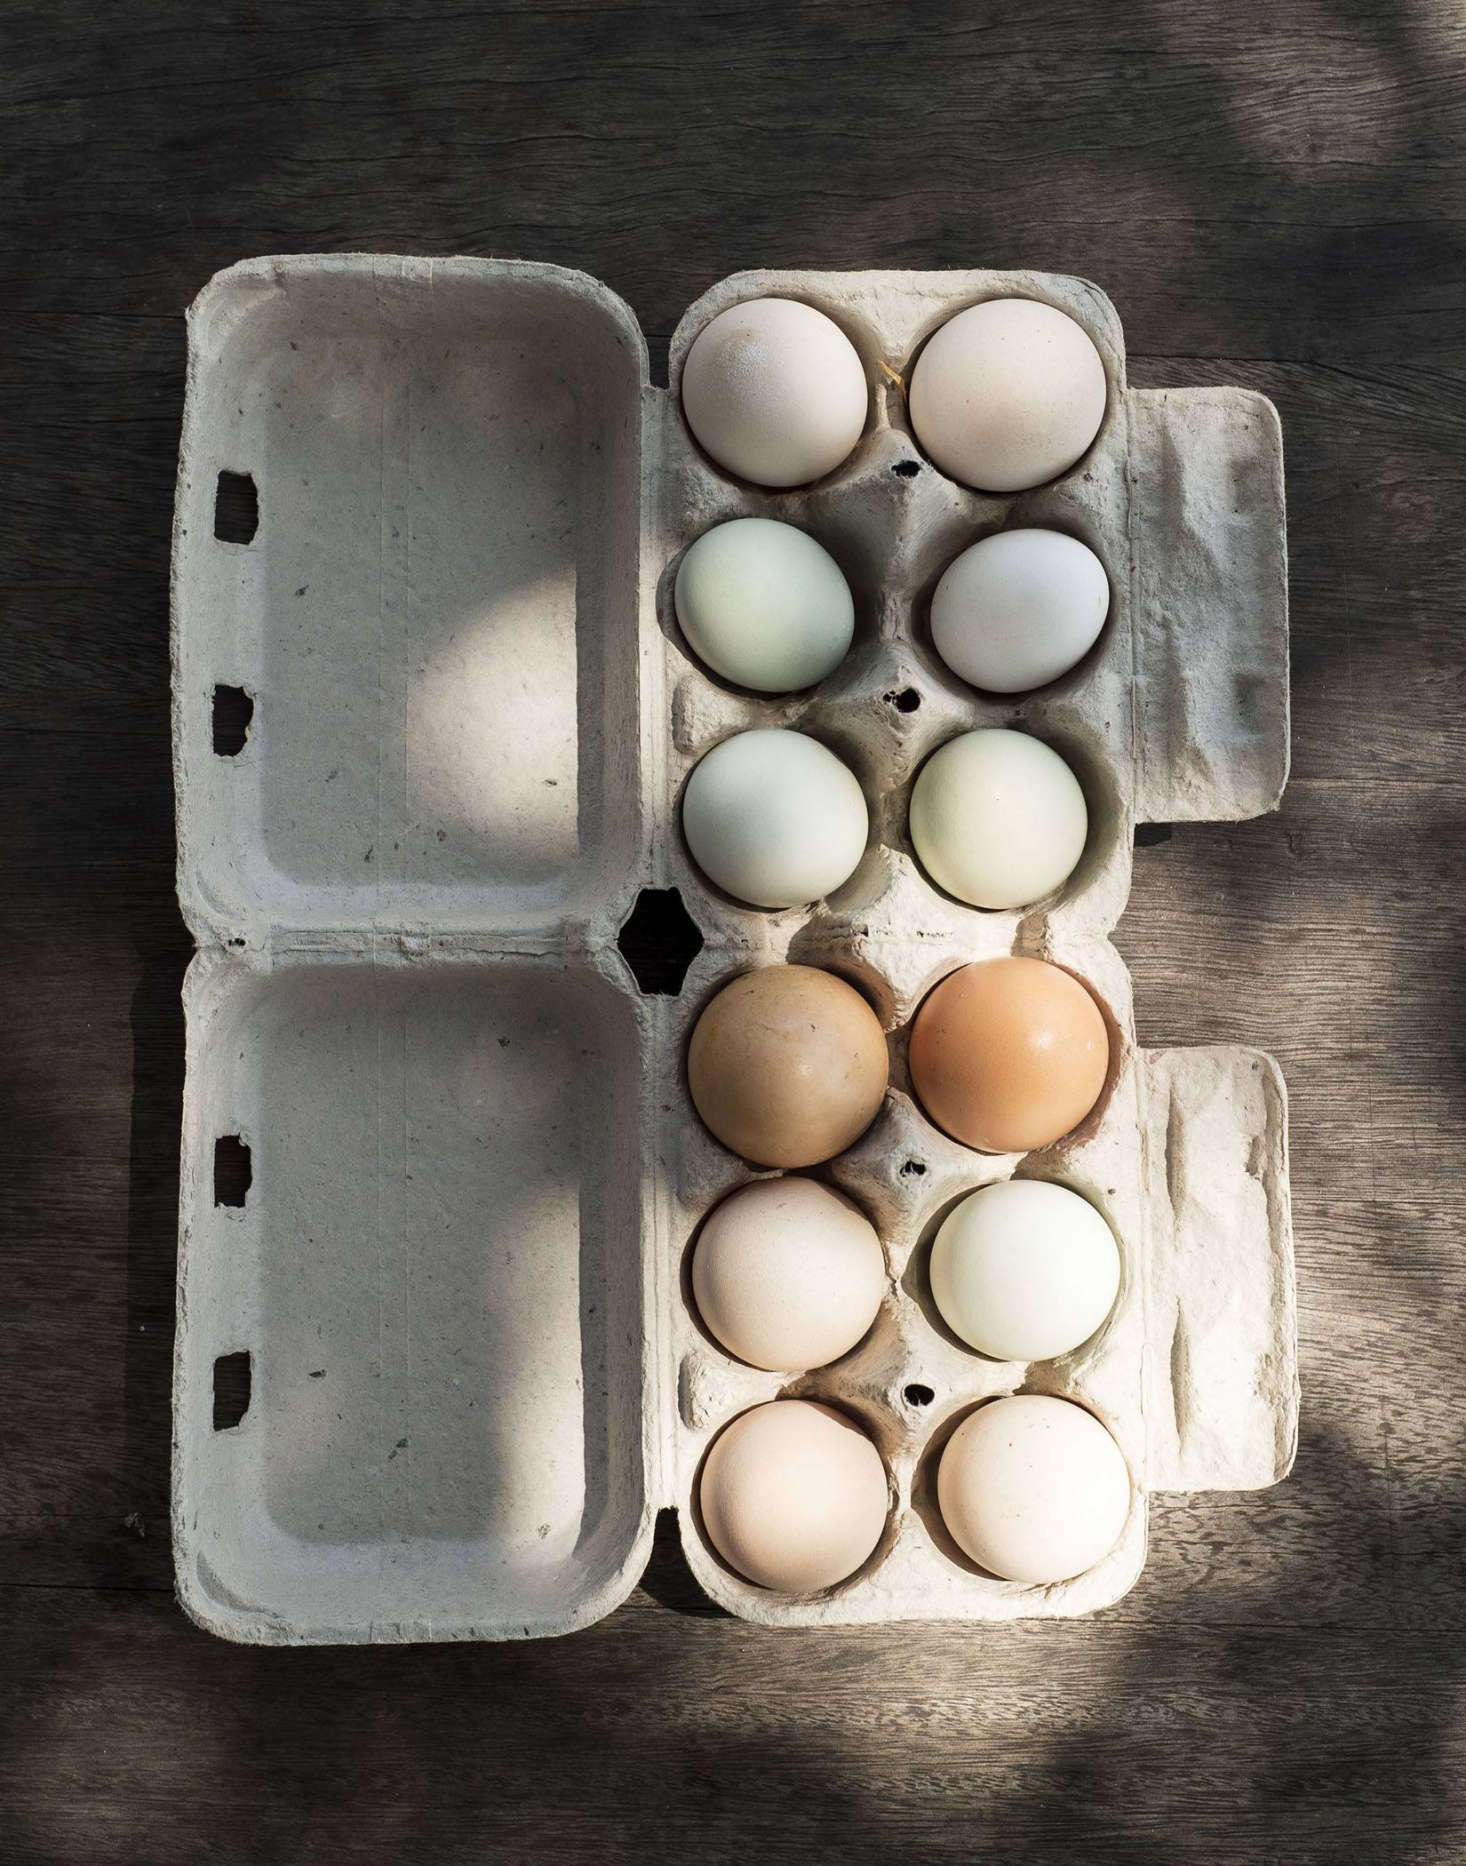 Everything produced at Grey Barn farm is organic: no synthetic fertilizers, growth hormones, herbicides, orpesticides are used.